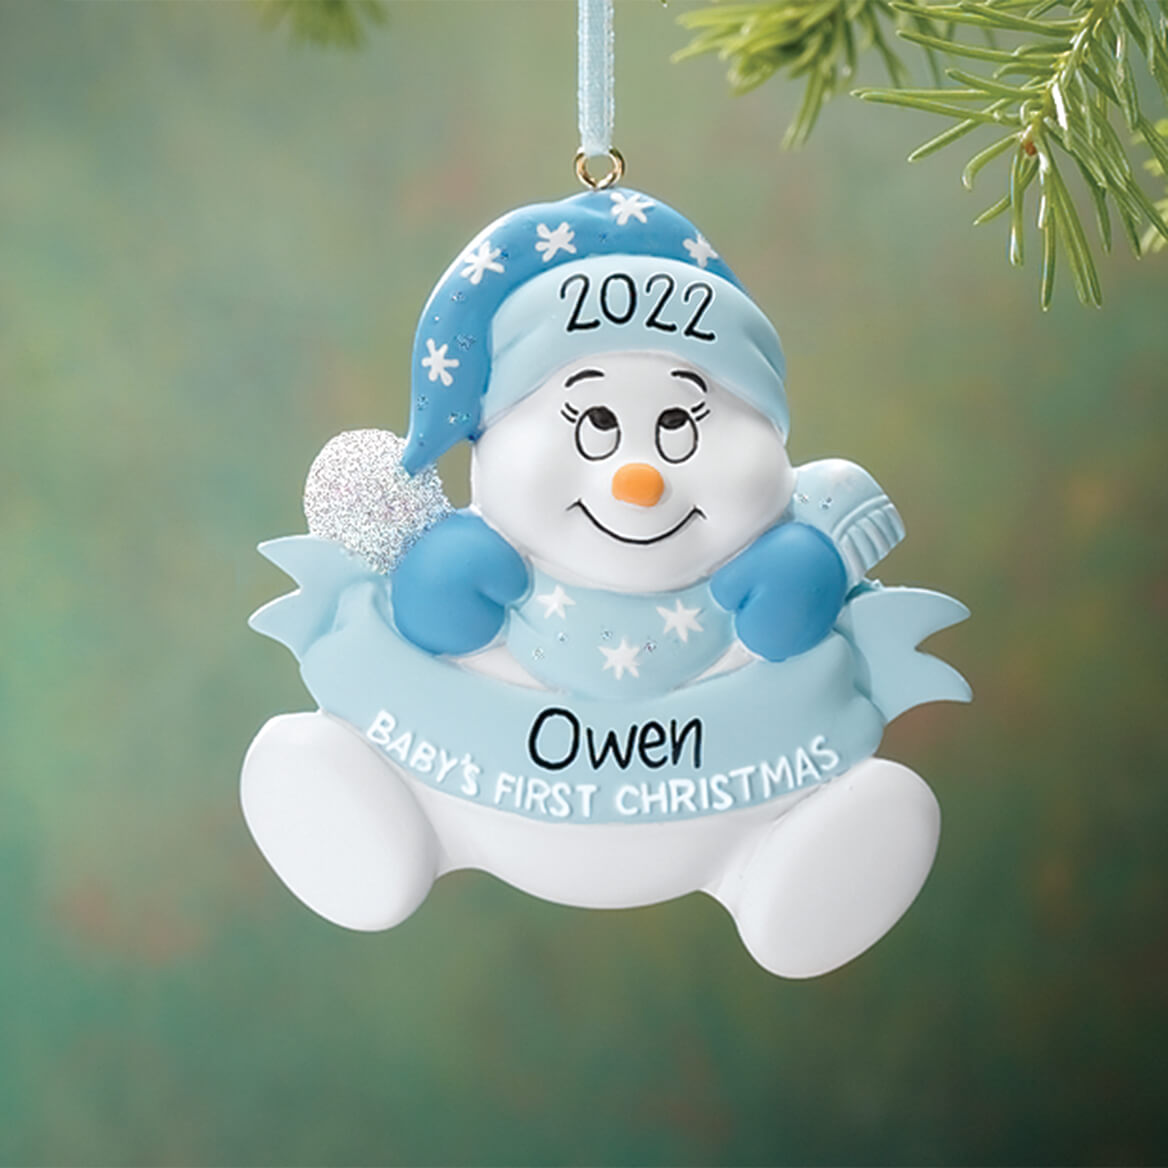 Personalized Baby's First Christmas Ornament - Miles Kimball